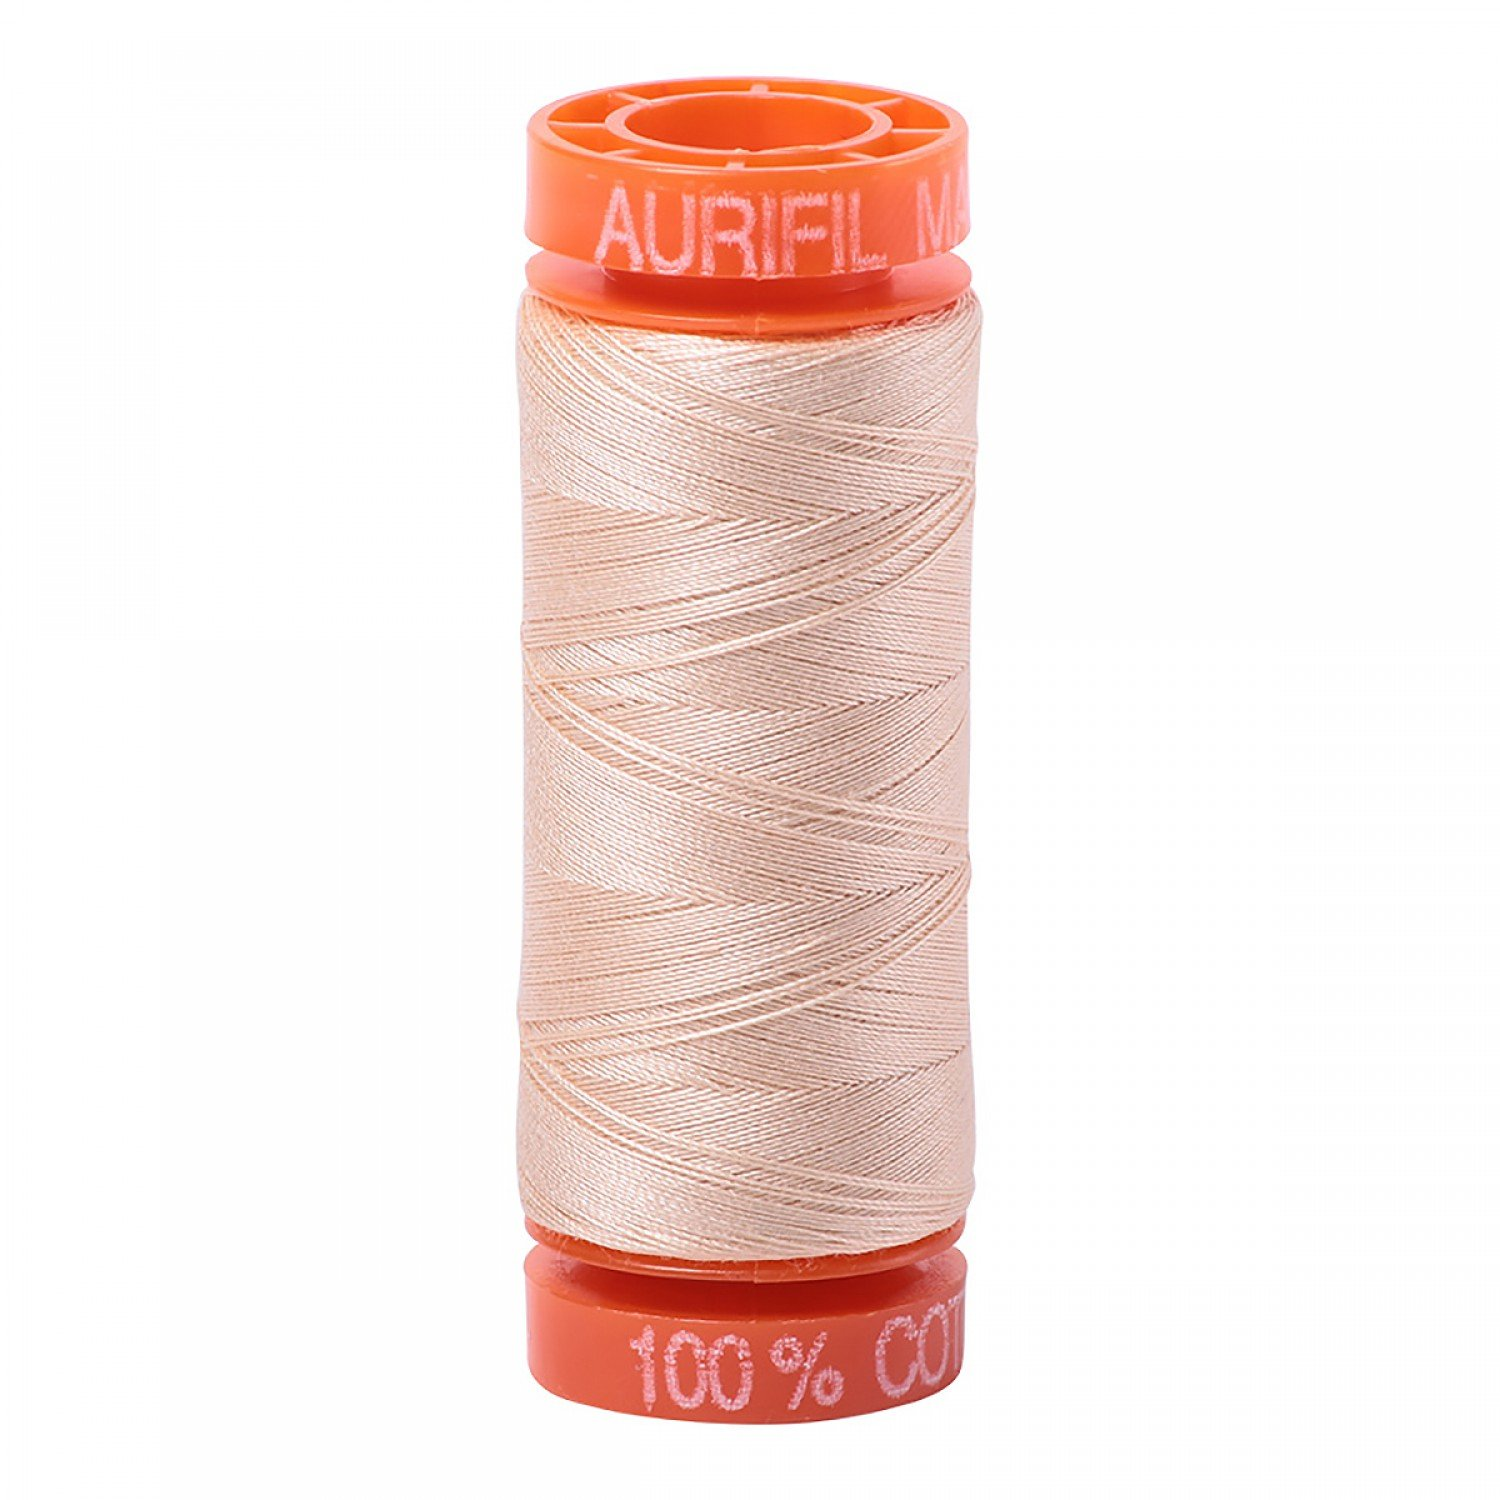 50 wt Aurifil - AS2315 Pale Flesh/Shell